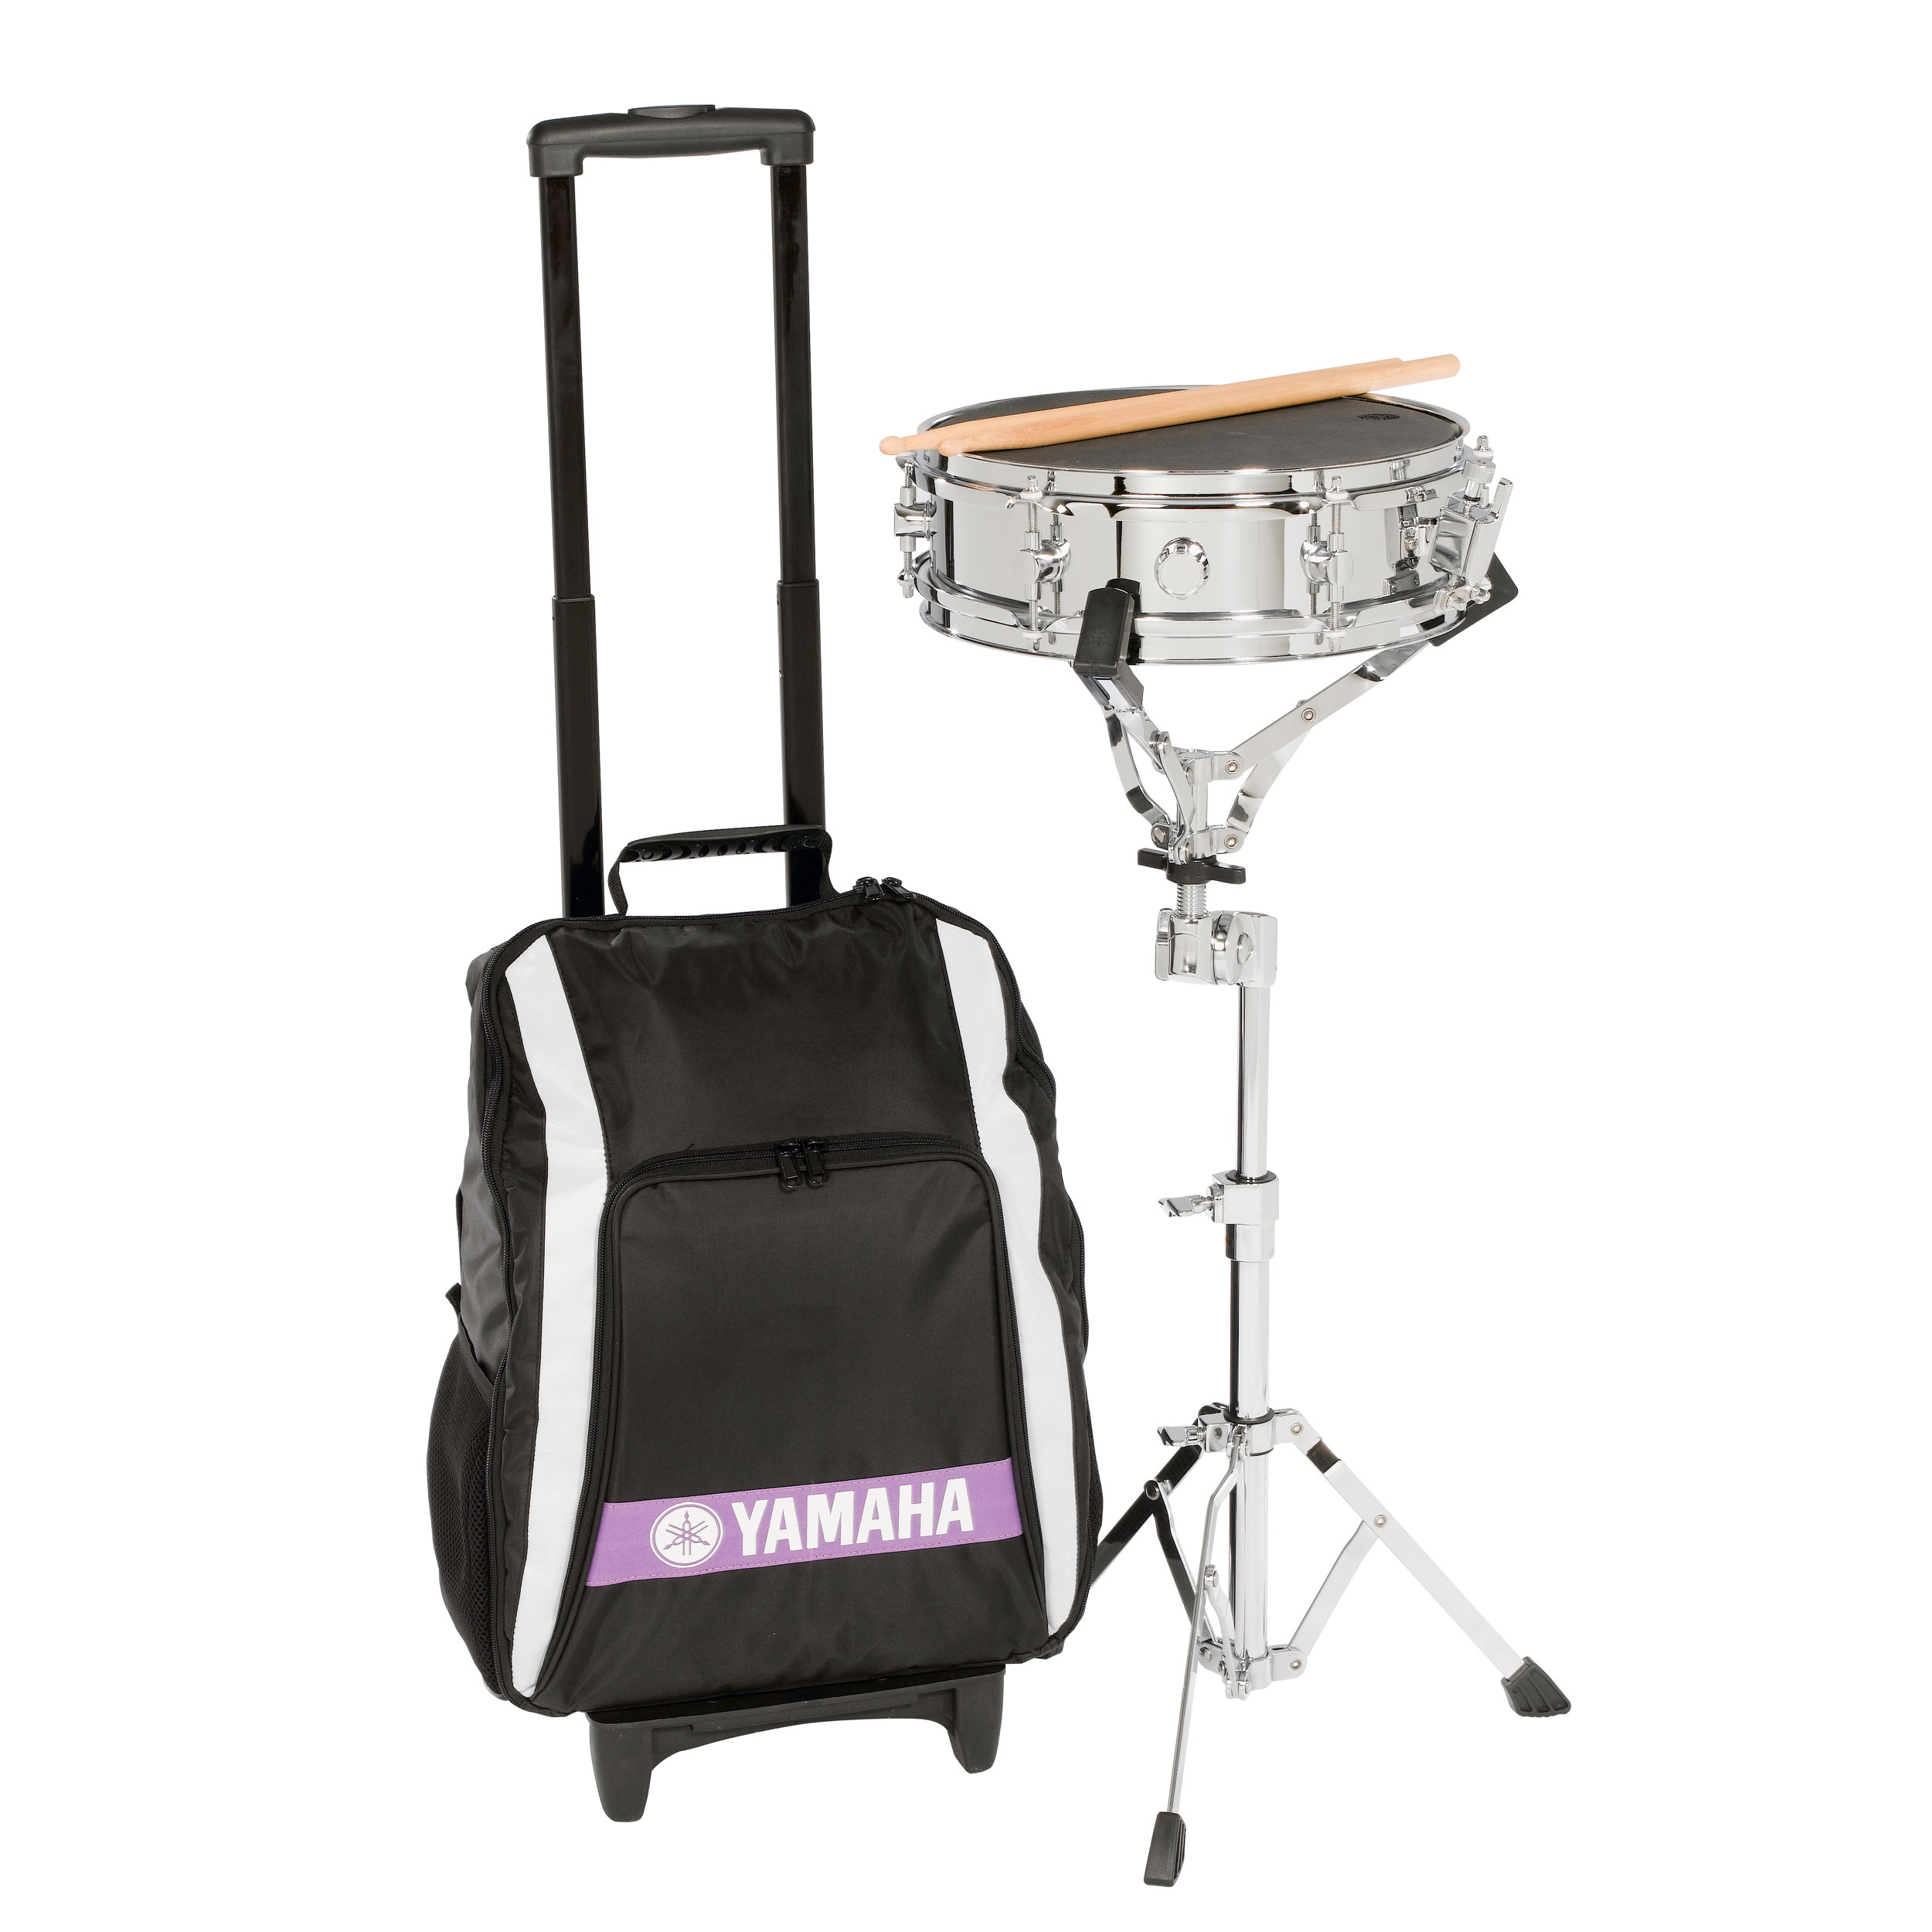 Yamaha Student Snare Kit with Rolling Cart